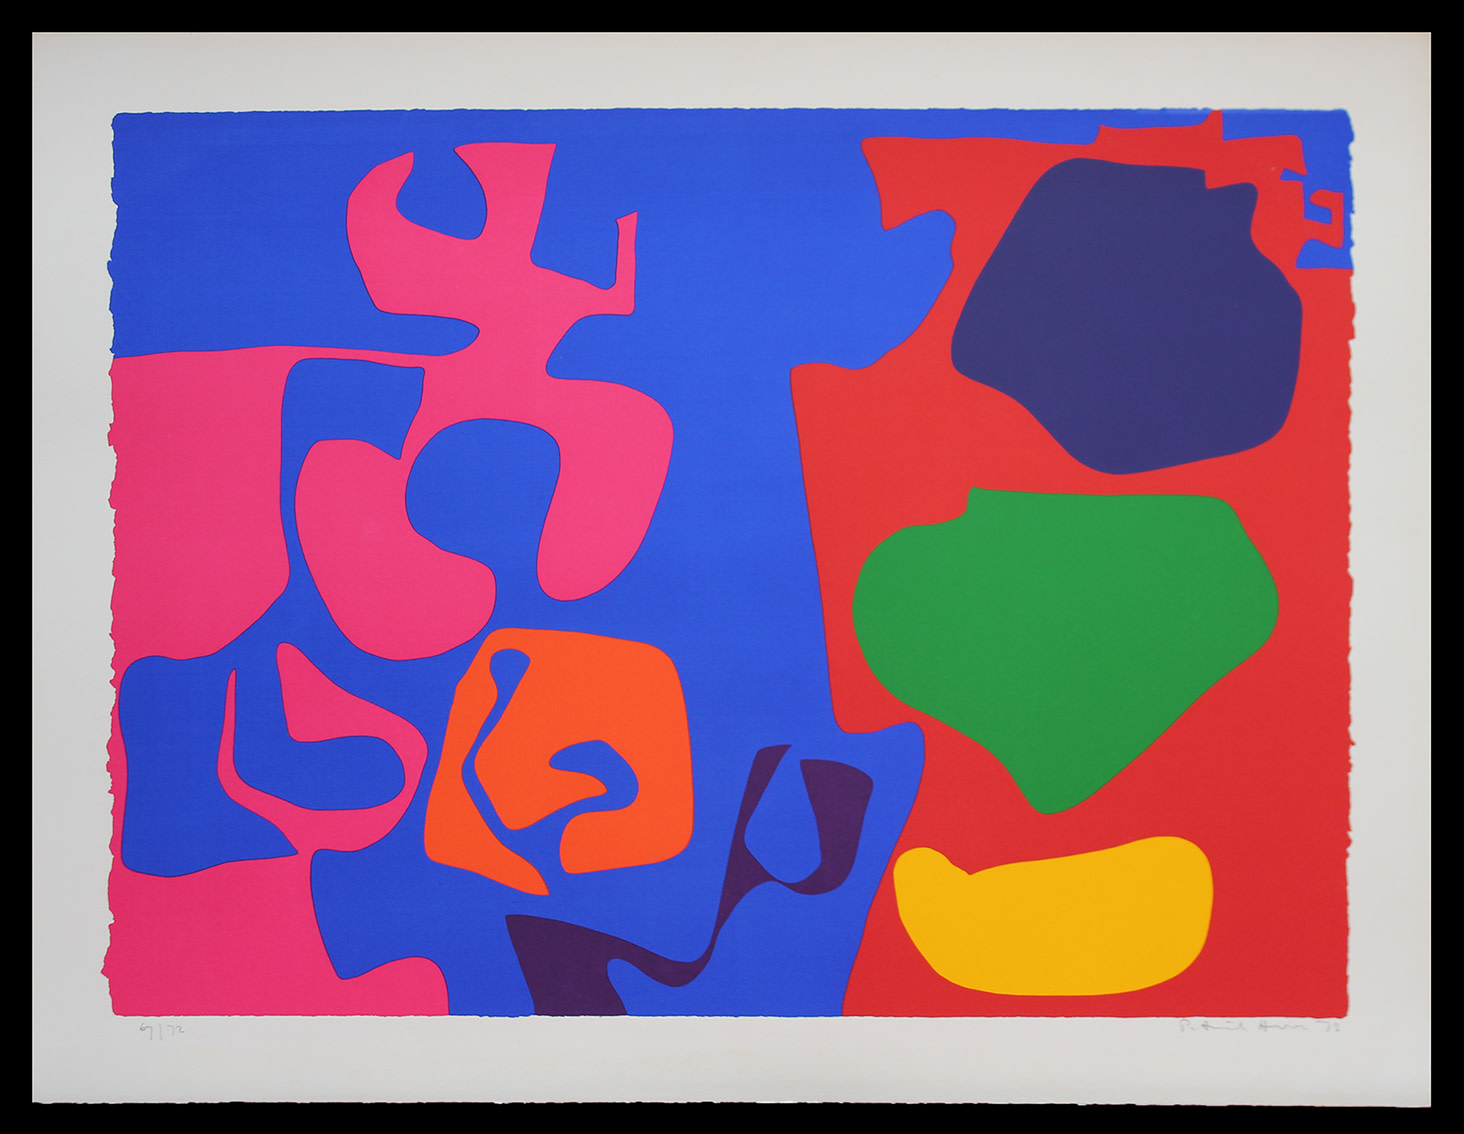 "<span class=""link fancybox-details-link""><a href=""/artists/93-patrick-heron-cbe/works/4477-patrick-heron-cbe-january-1973-9-1973/"">View Detail Page</a></span><div class=""artist""><strong>Patrick Heron CBE</strong></div> 1920 – 1999 <div class=""title""><em>January 1973 : 9</em>, 1973</div> <div class=""signed_and_dated"">signed, dated and numbered in pencil</div> <div class=""medium"">silkscreen print in colours on wove paper, with full margins</div> <div class=""dimensions"">Image size: 58.5 x 80 cm<br /> 23 1/8 x 31 1/2 in<br /> sheet size: 69.5 x 91 cm<br /> 27 3/8 x 35 7/8 in</div> <div class=""edition_details"">Edition 67 of 72</div><div class=""copyright_line"">© The Estate of Patrick Heron</div>"